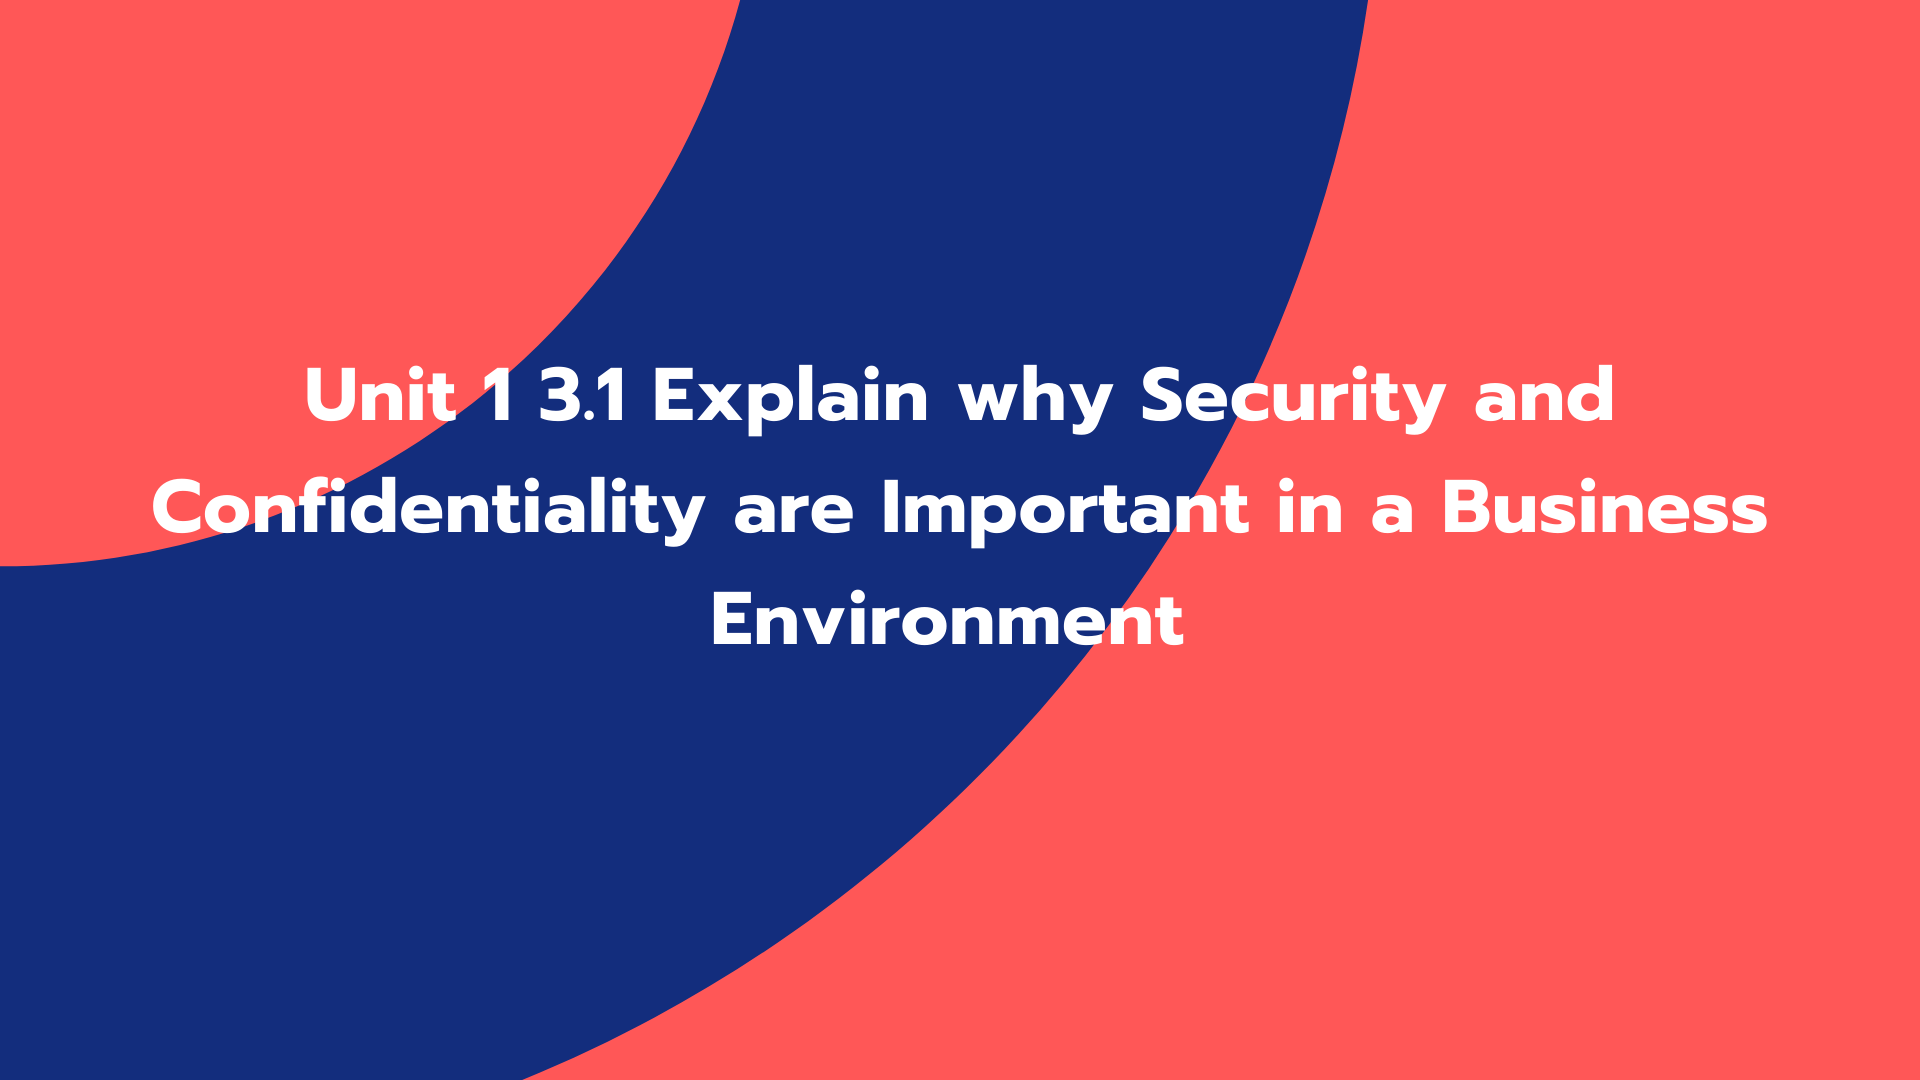 Unit 1 3.1 Explain why Security and Confidentiality are Important in a Business Environment